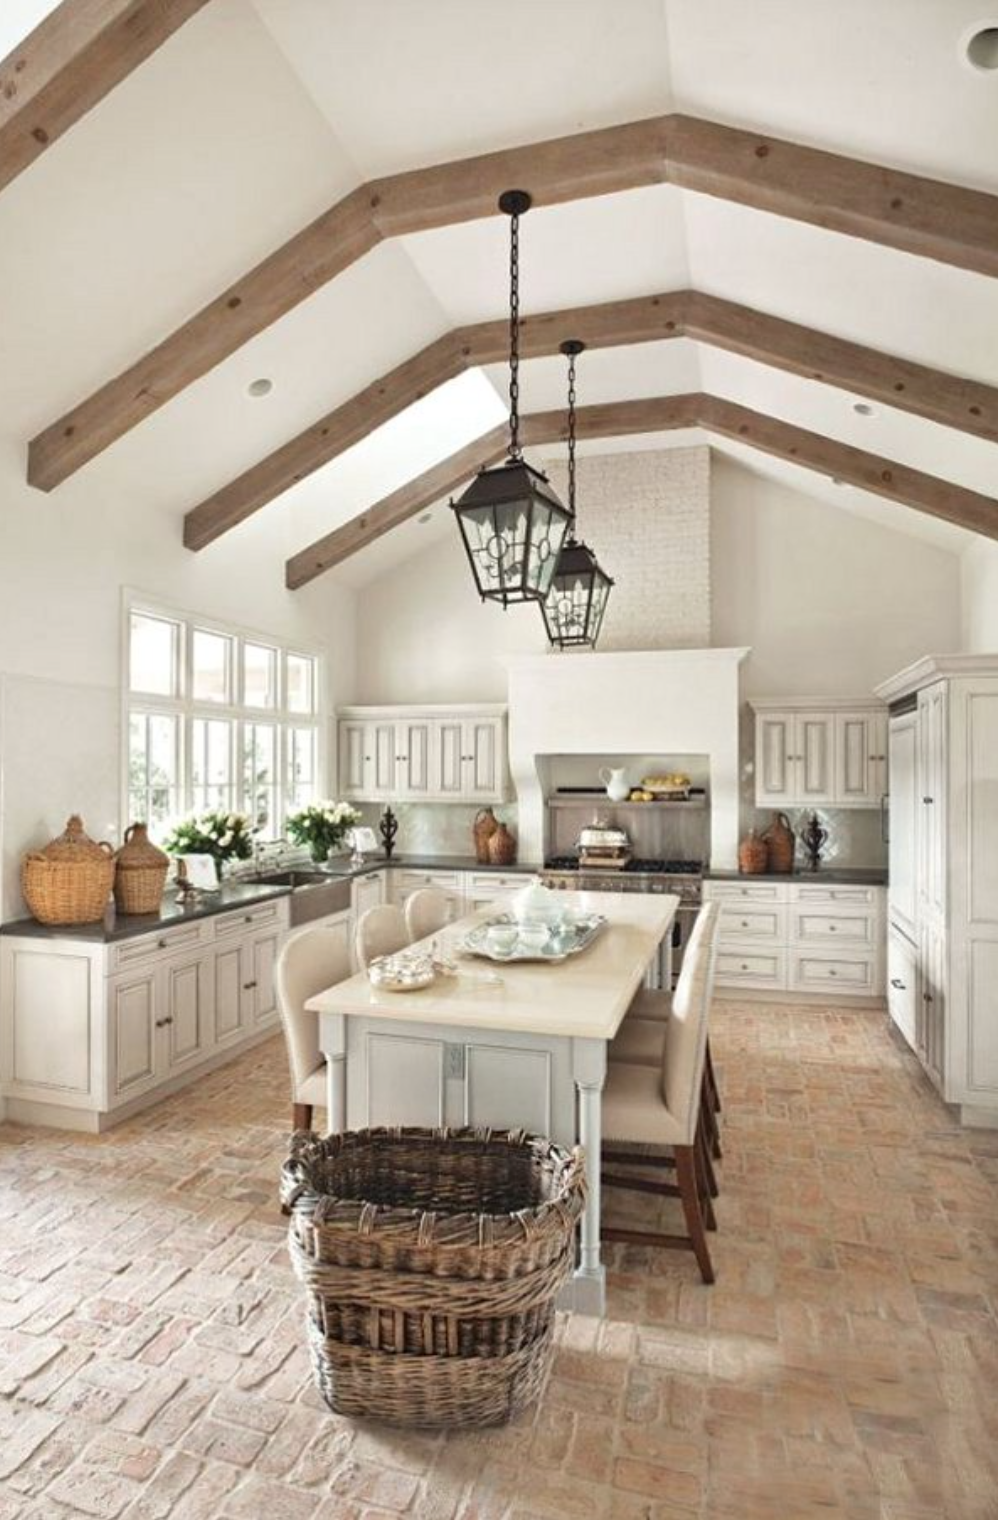 new tuscan style | Old World, Mediterranean, Italian, Spanish ...